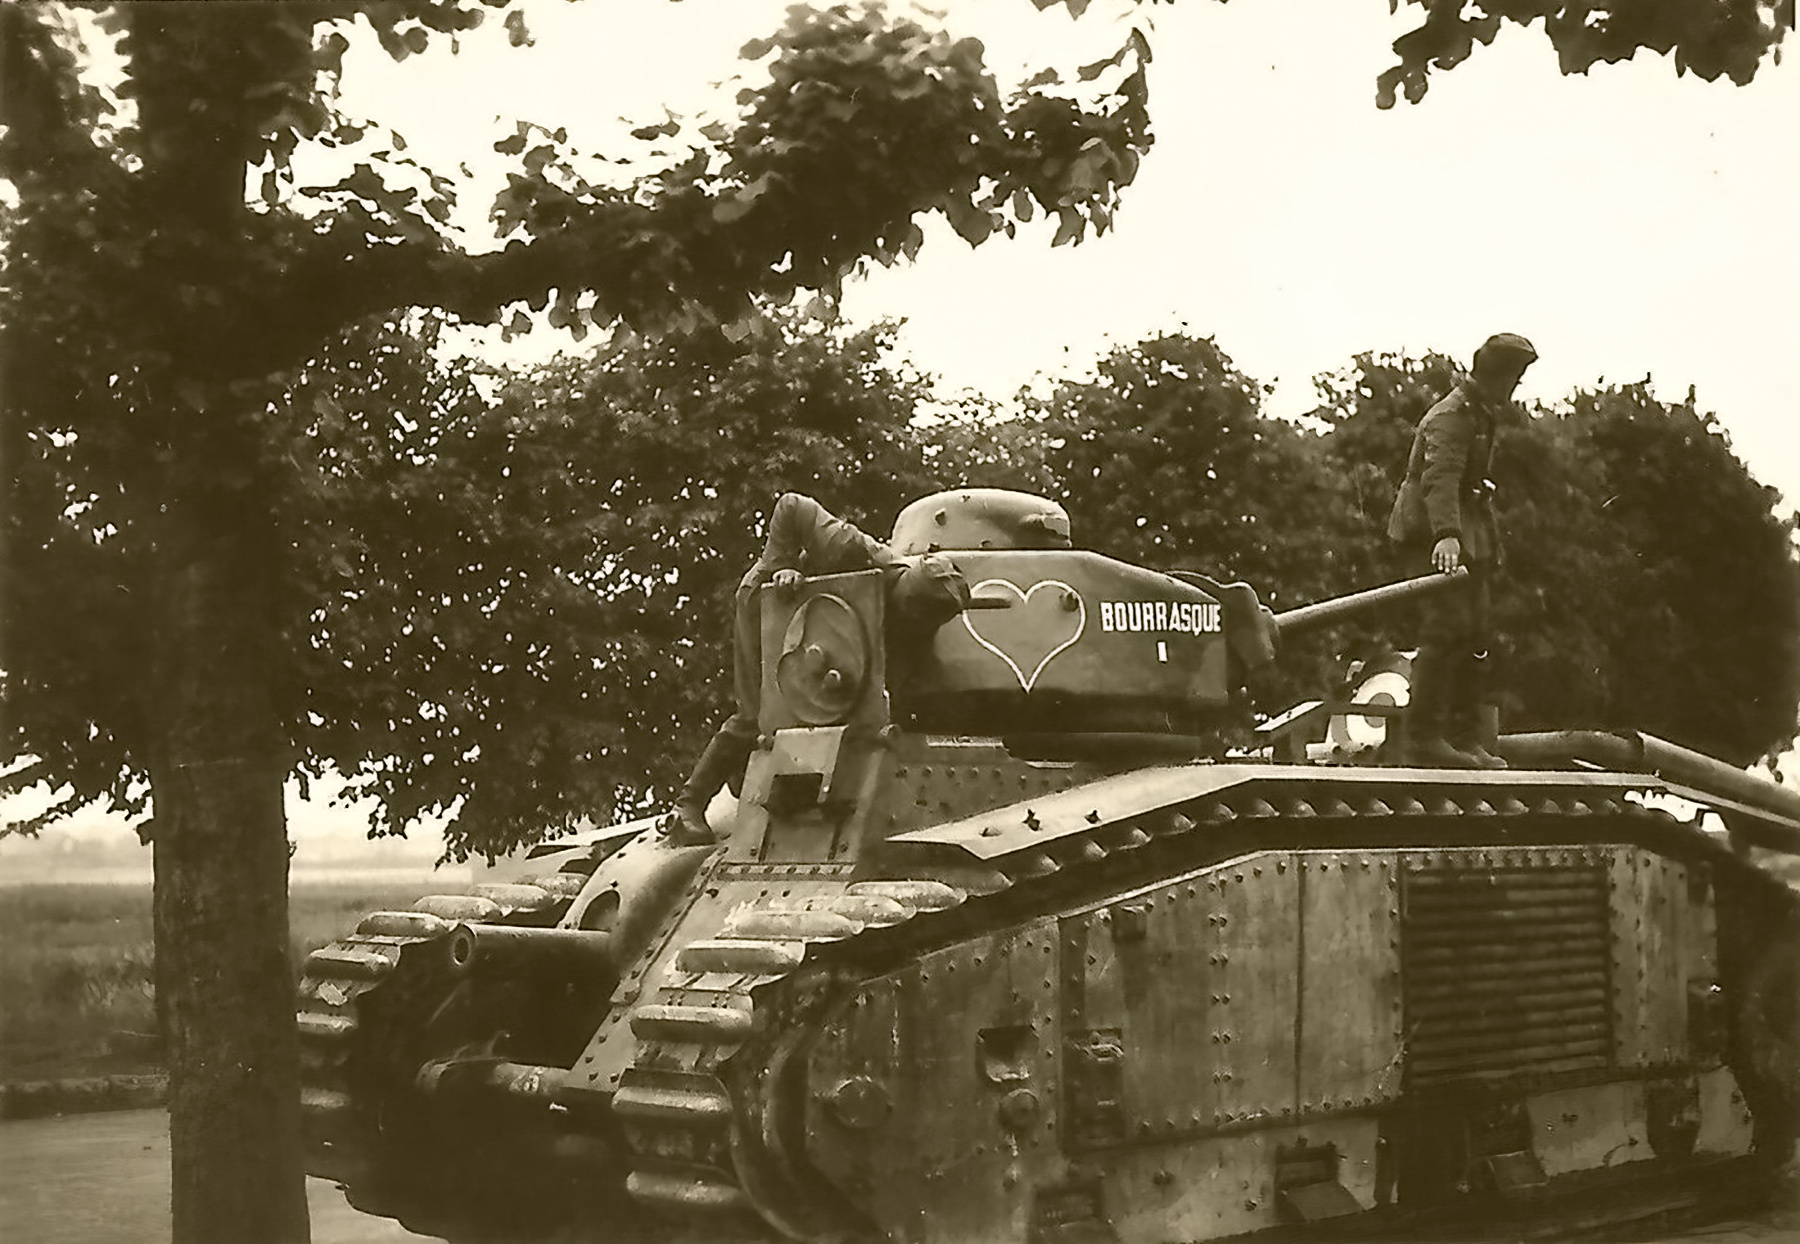 French Army Renault Char B1bis named Bourrasque I 491 abandoned battle of France ebay 01